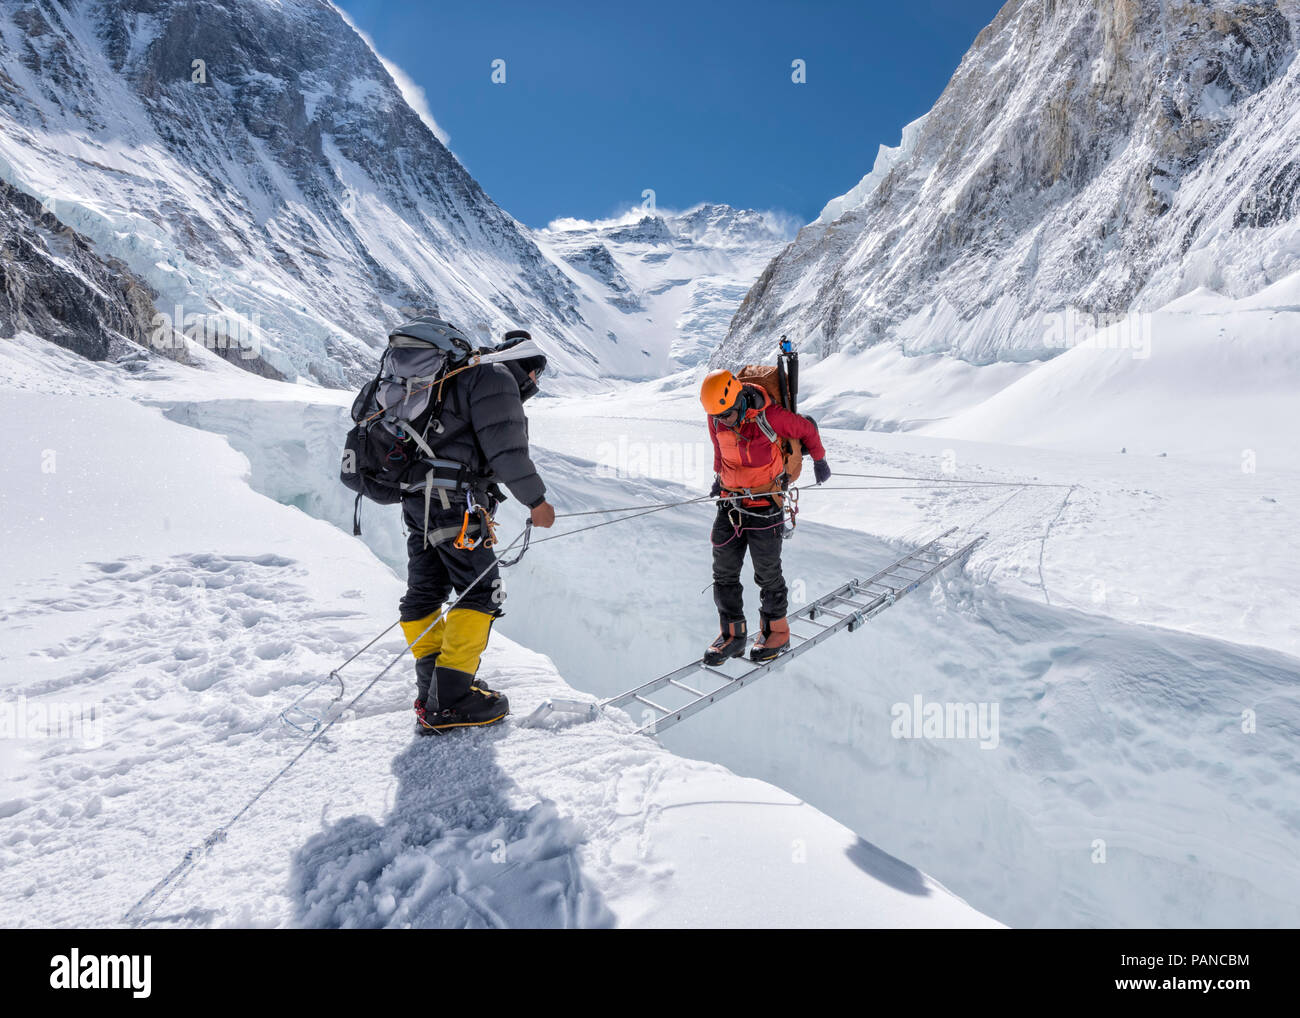 Nepal, Solo Khumbu, Everest, Sagamartha National Park, Mountaineers crossing icefall at Western Cwm - Stock Image